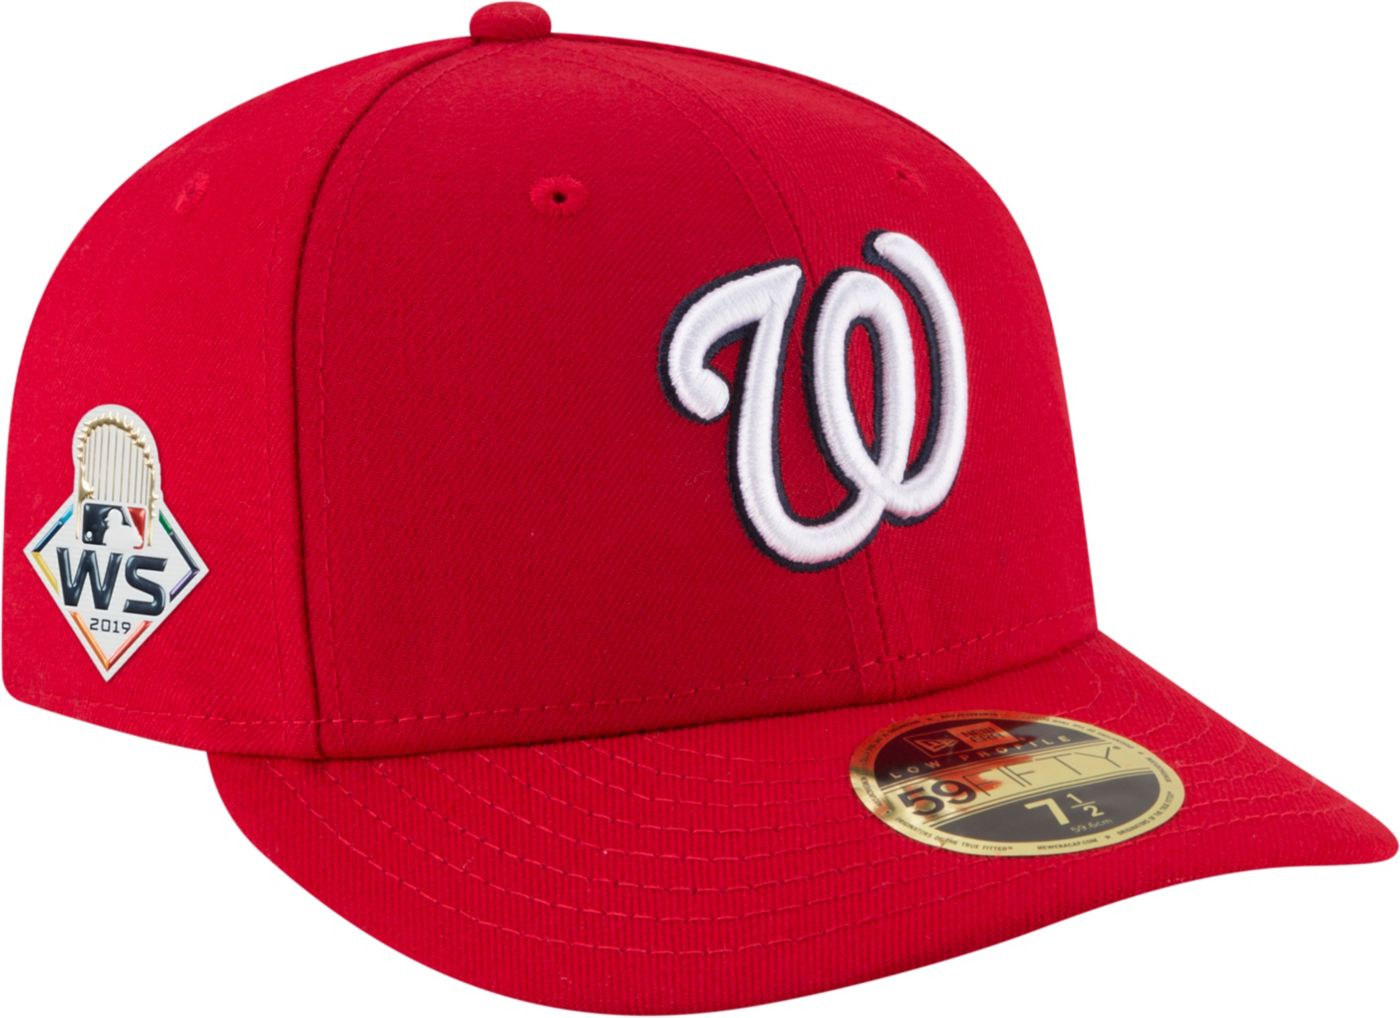 New Era Men's 2019 World Series 59Fifty Washington Nationals Authentic Low Crown Fitted Hat